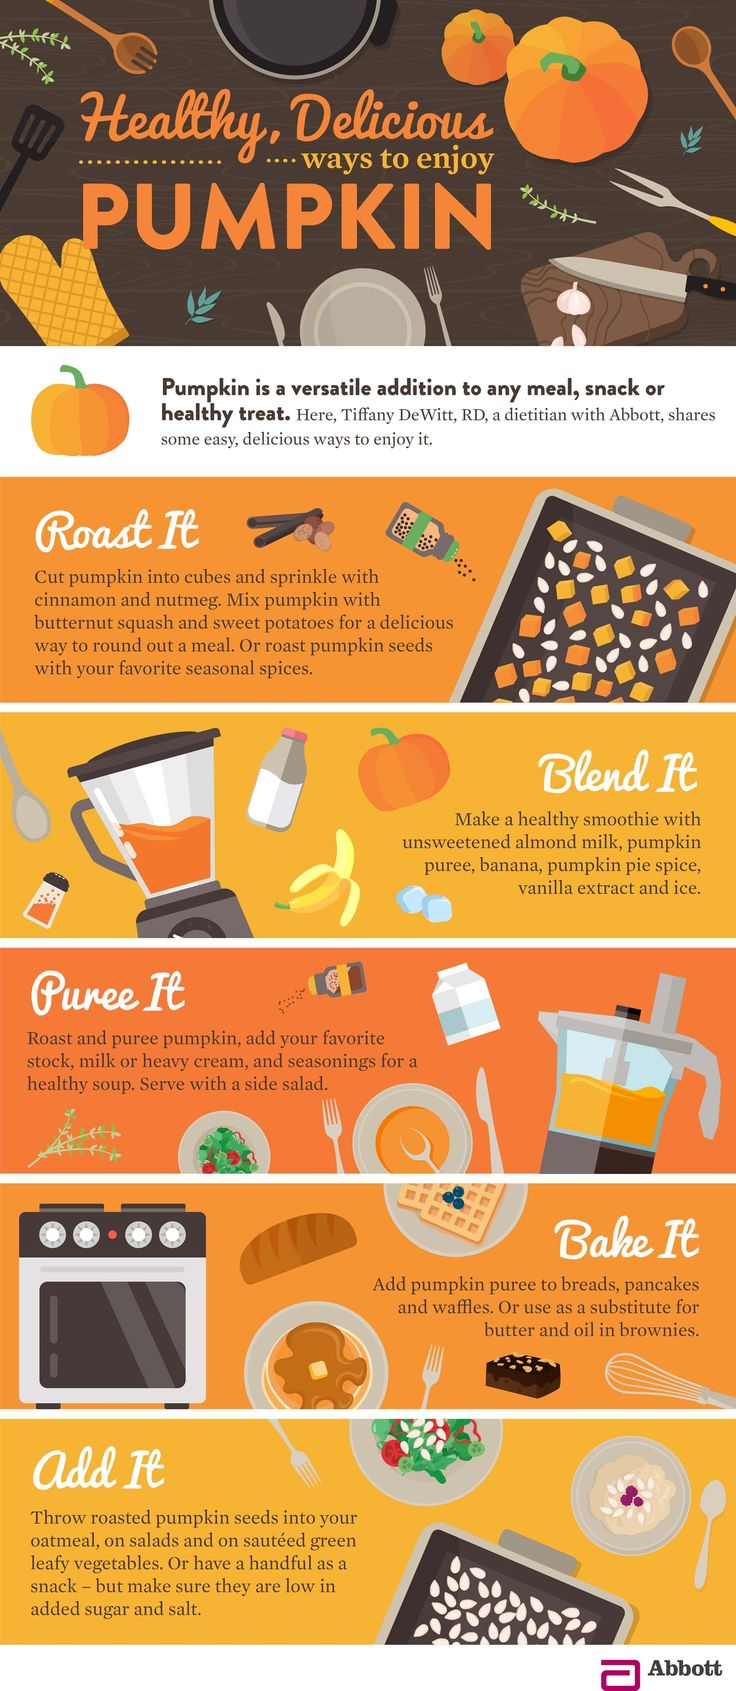 Pumpkin is a vegetable we generally only think about but once a year – bringing with it the sweet, comforting aroma of warm pumpkin lattes, pumpkin breads and pumpkin pie. In this infographic by Abbott, discover six surprising health benefits of pumpkin andfive simple ways to enjoy both the flesh and the seeds.